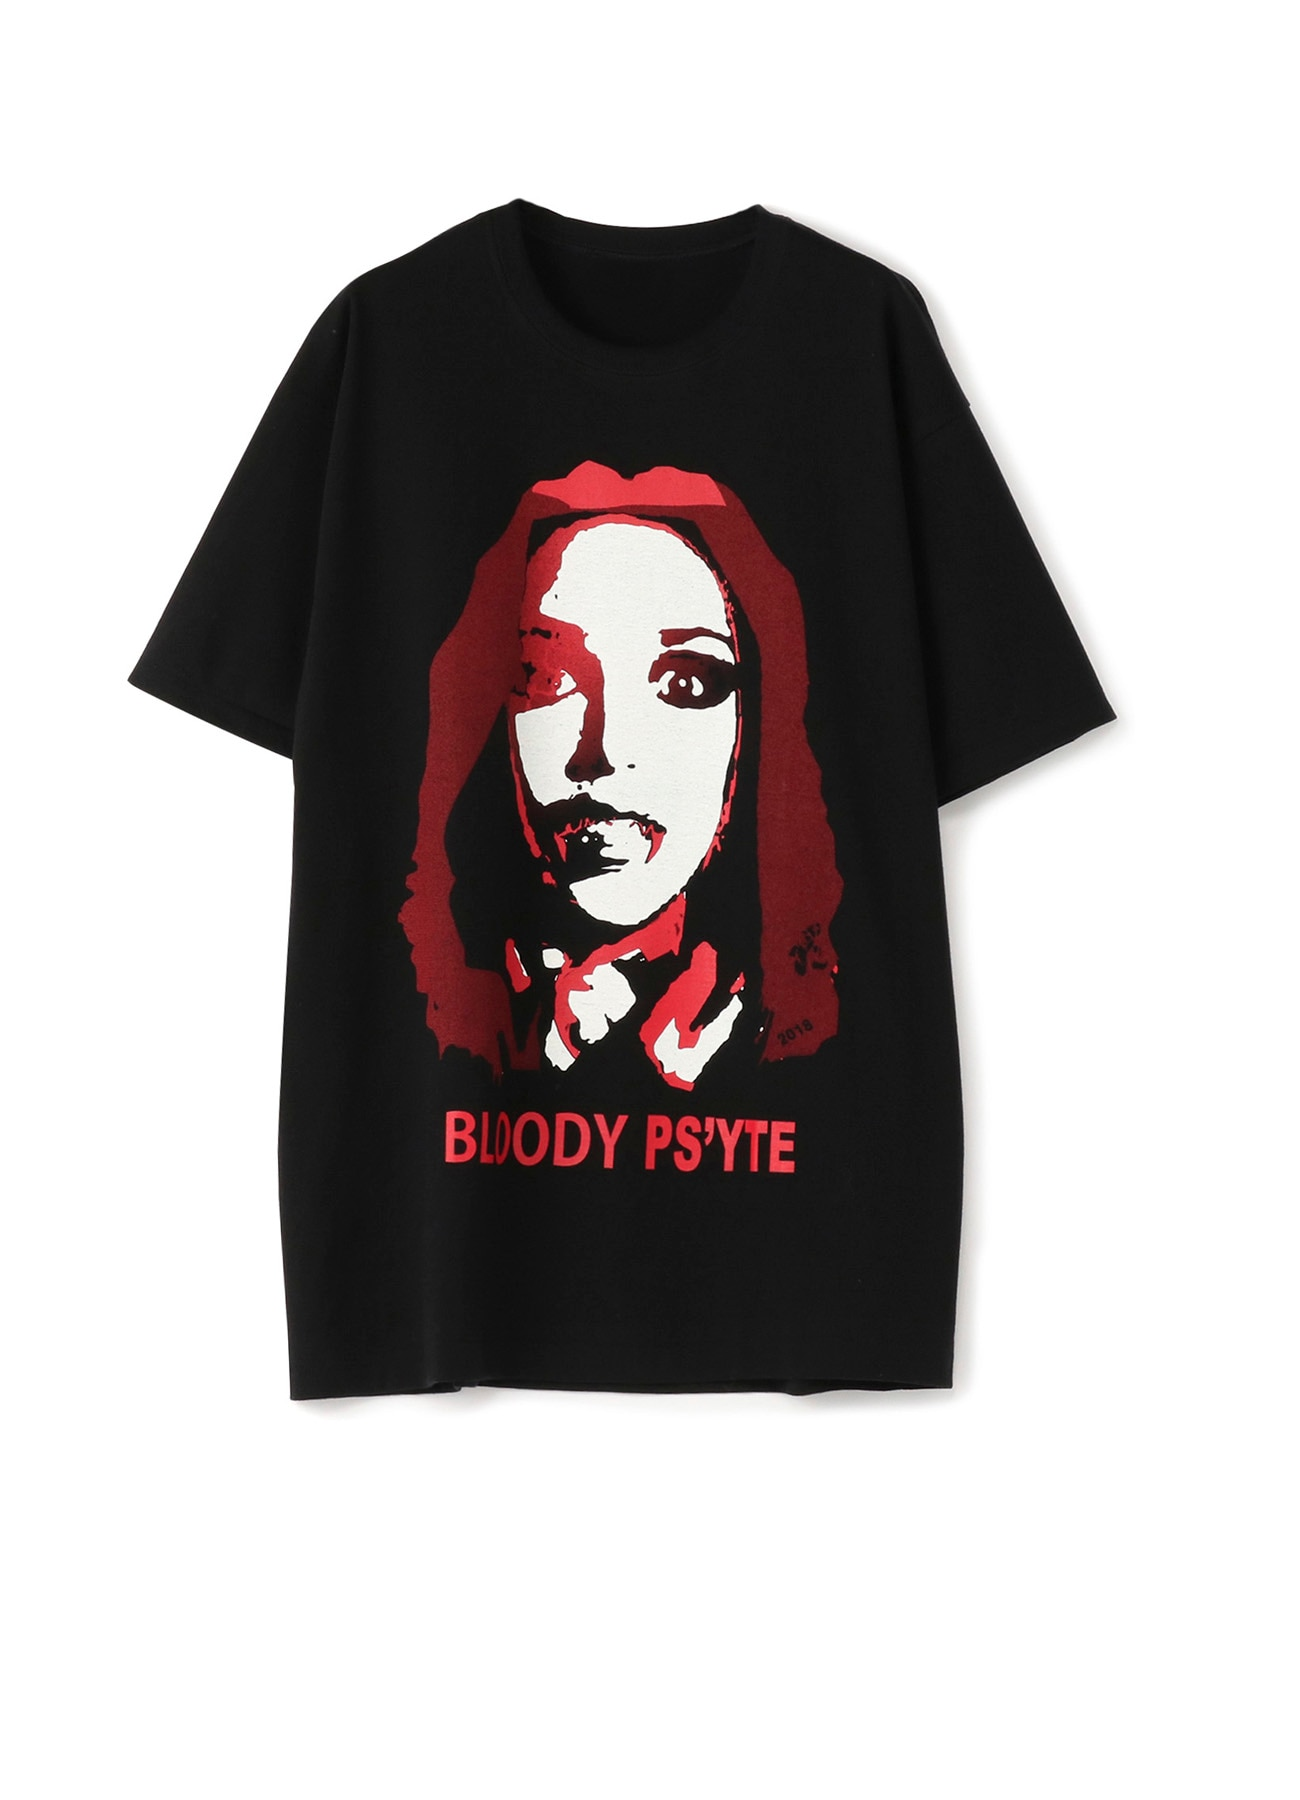 20/CottonJersey Bloody PS'YTE T-Shirt